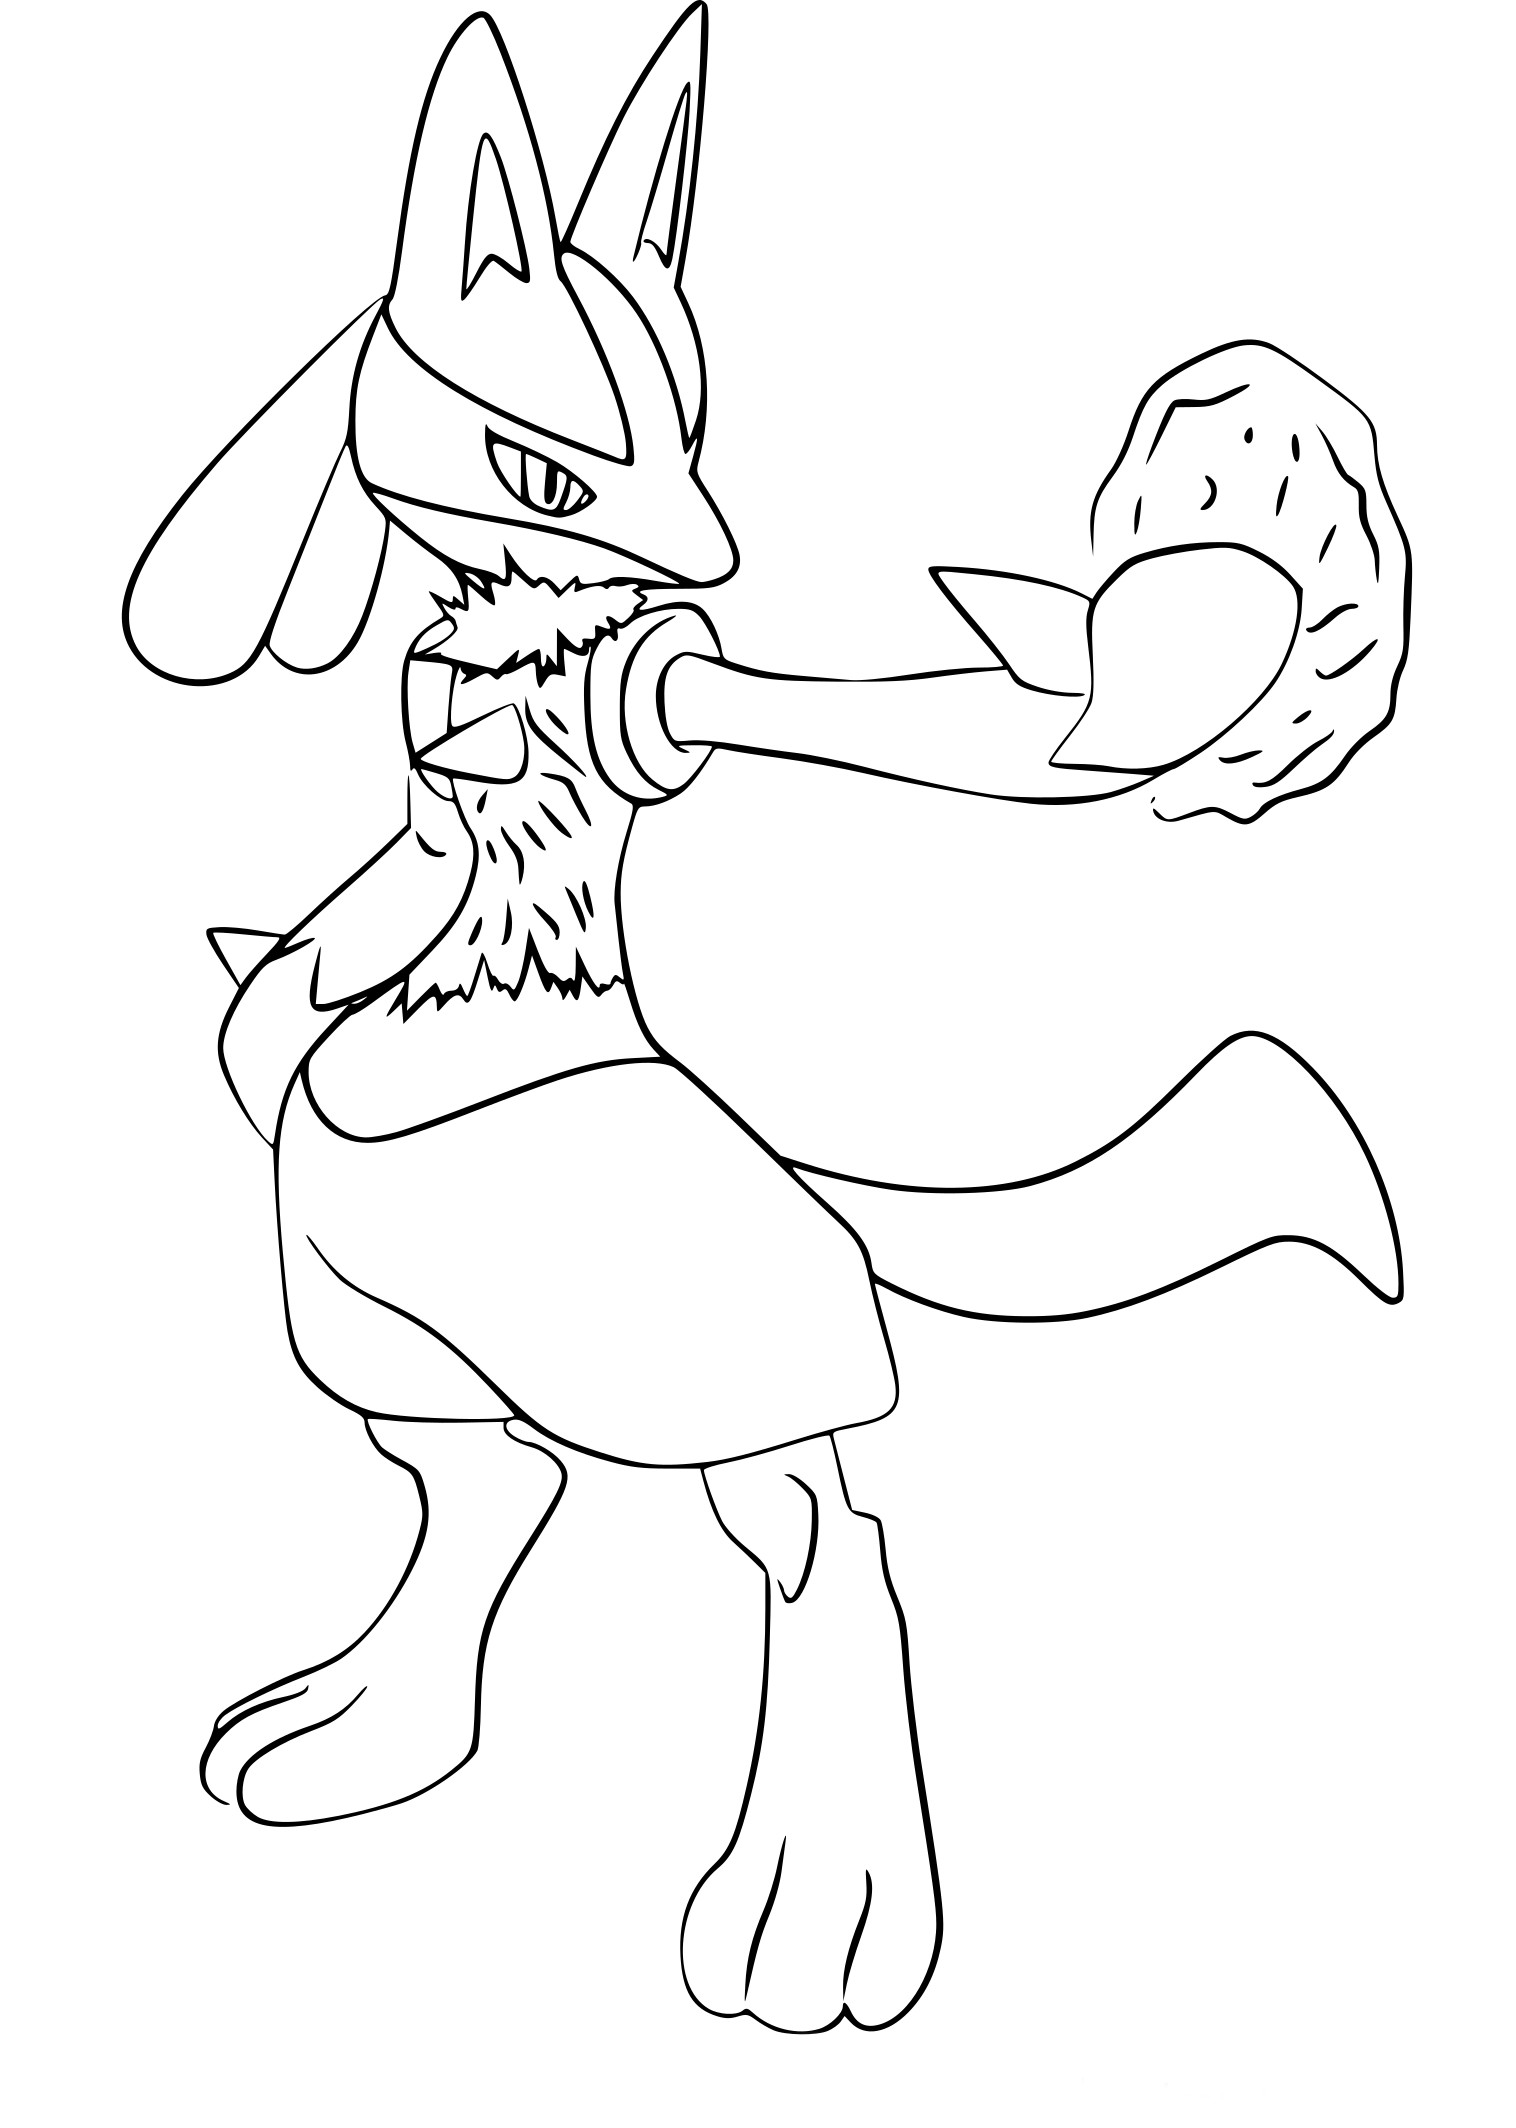 Coloriage Super Smash Bros Lucario